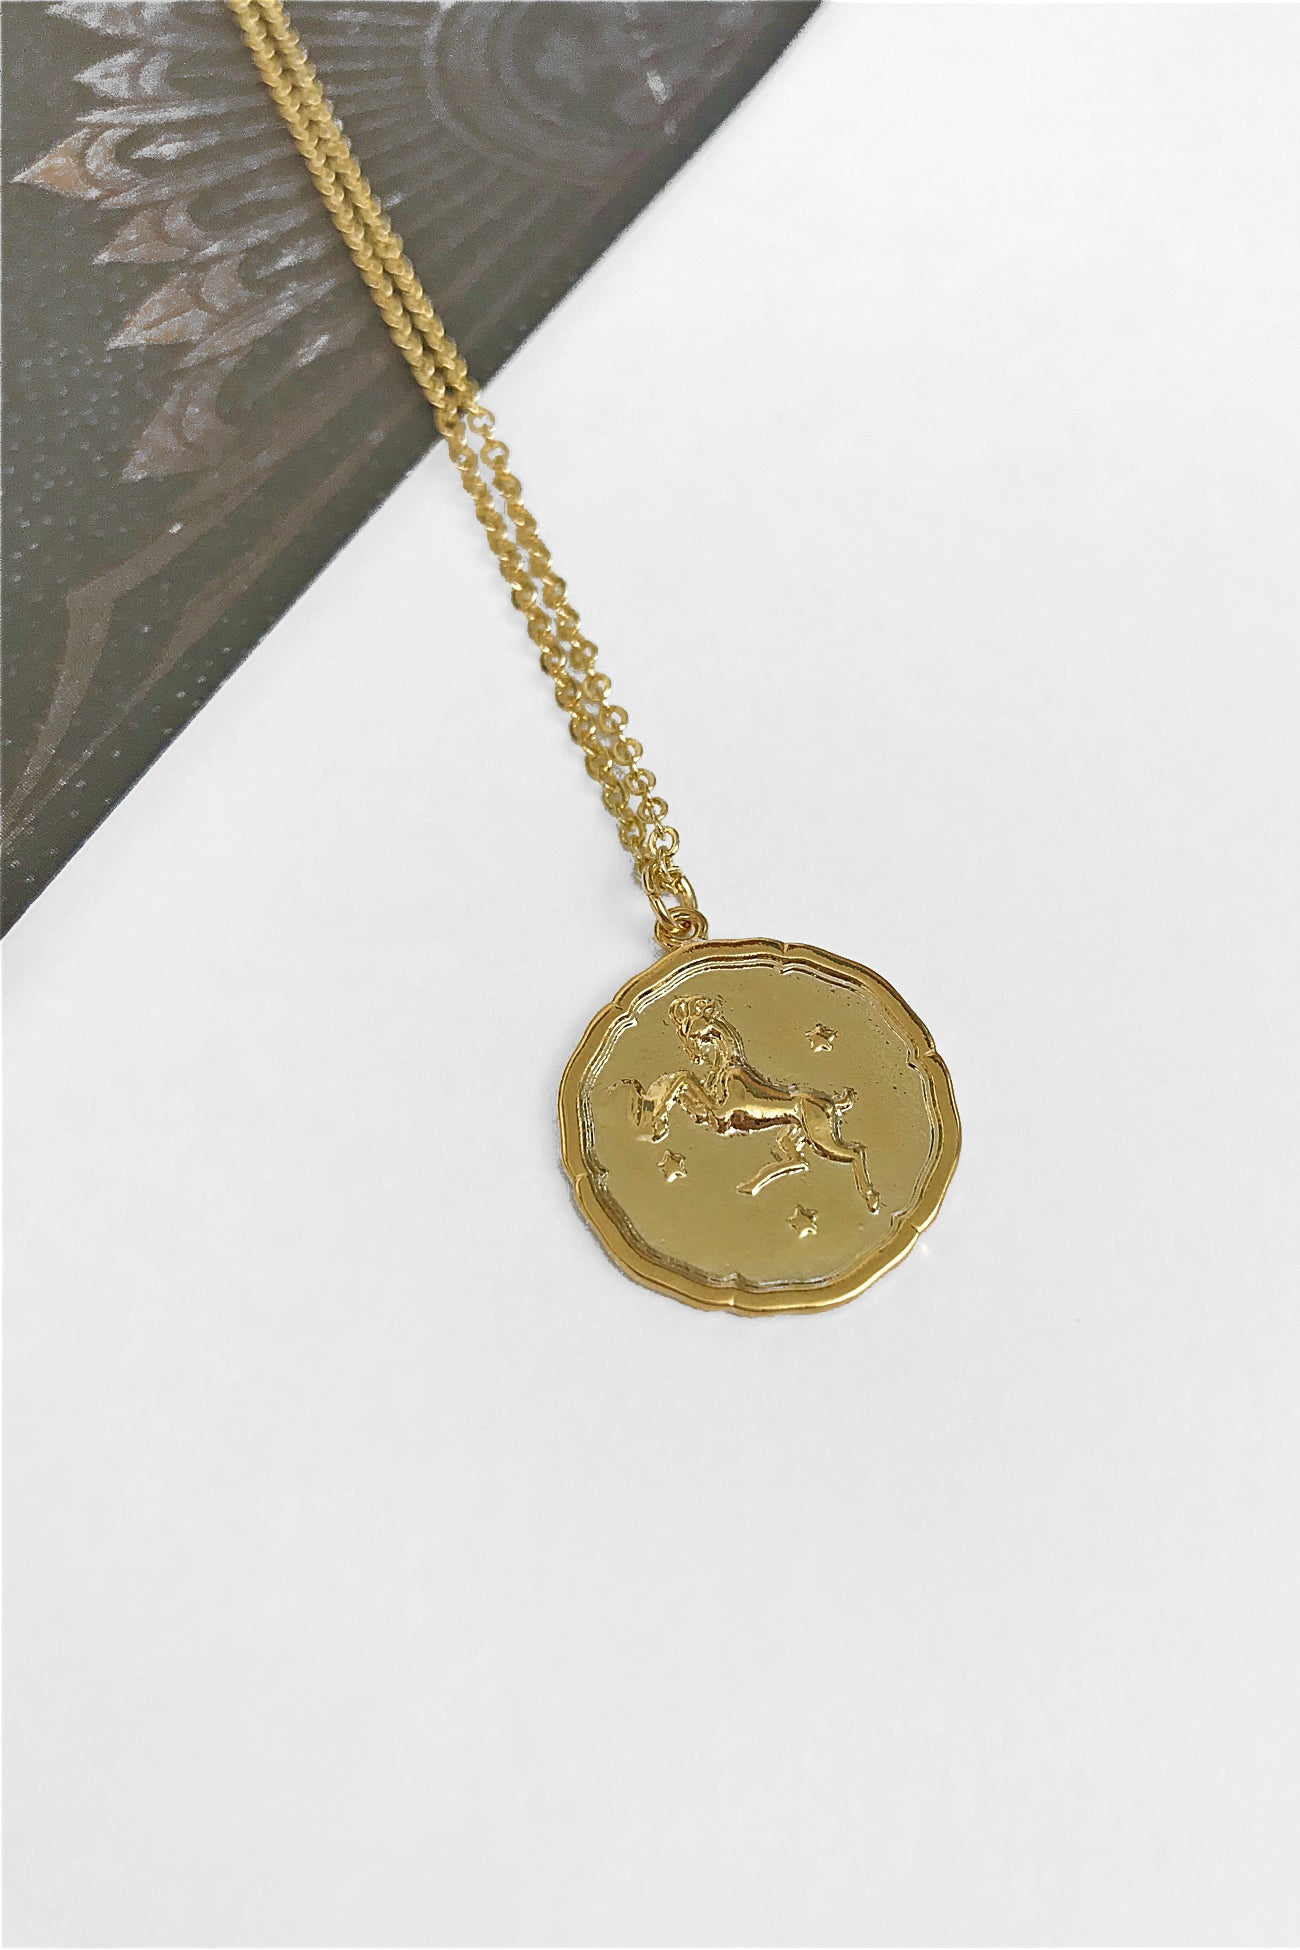 Aries vintage coin necklace